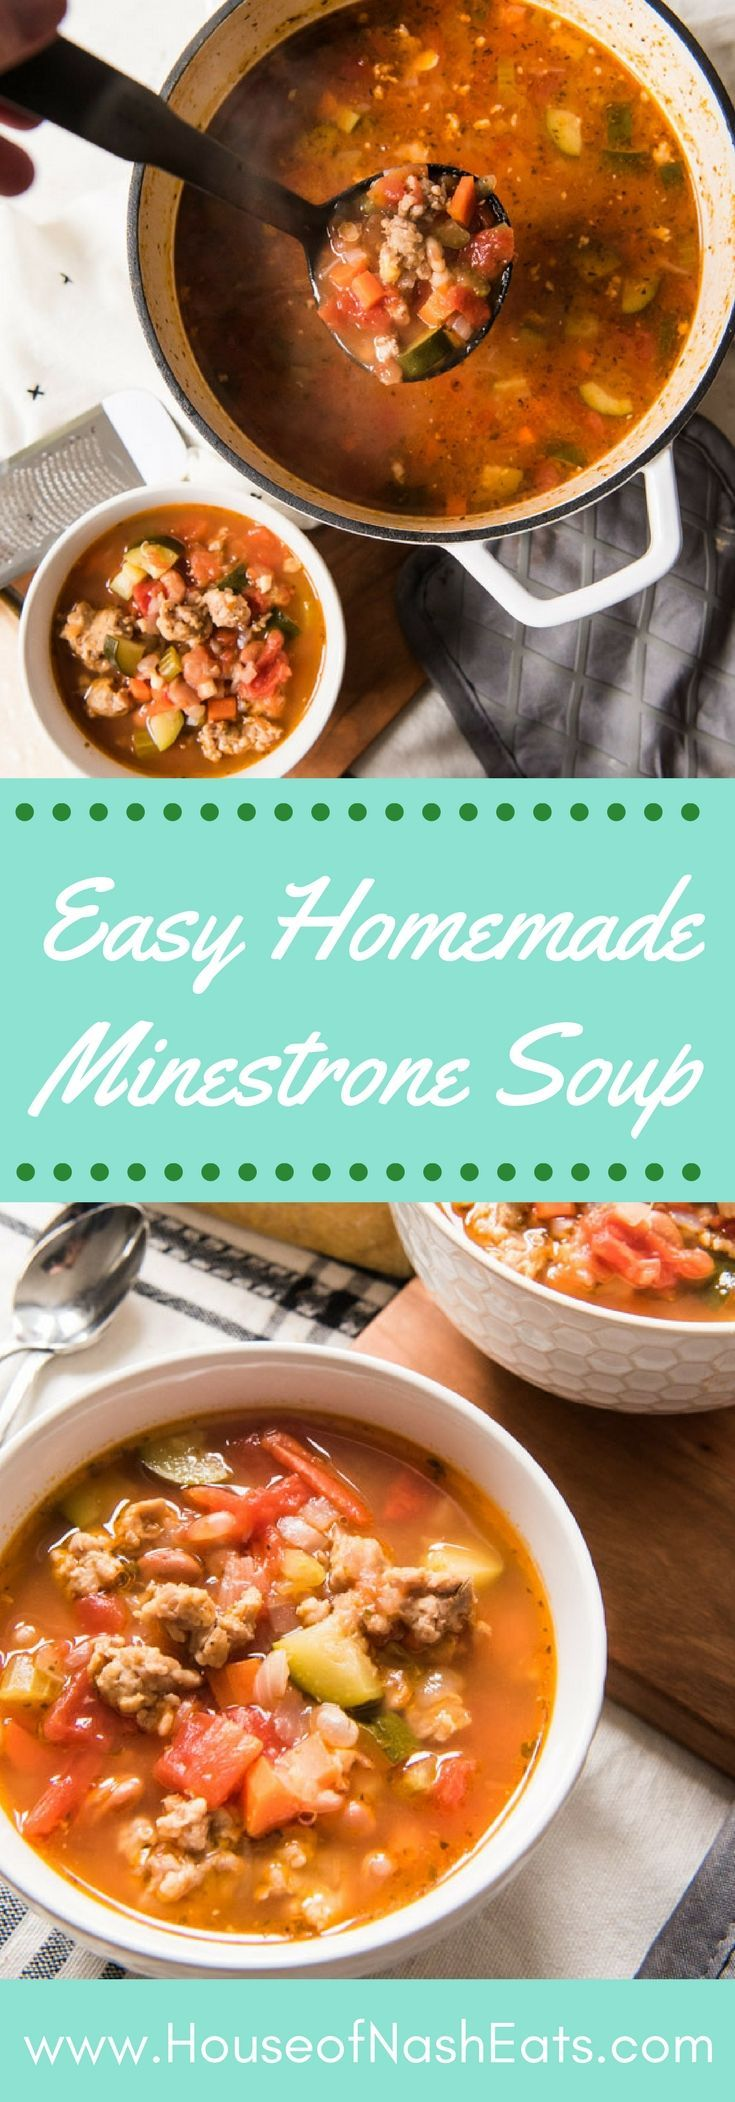 This easy minestrone soup recipe has a rich, flavorful tomato-y broth that is loaded with vegetables, Italian sausage, and beans. It's hearty, healthy (so many veggies!), and comforting, and this traditional minestrone soup can be made on the stovetop or in the crockpot. #slowcooker #crockpot #soup #minestrone #italian #sausage #beans #vegetables